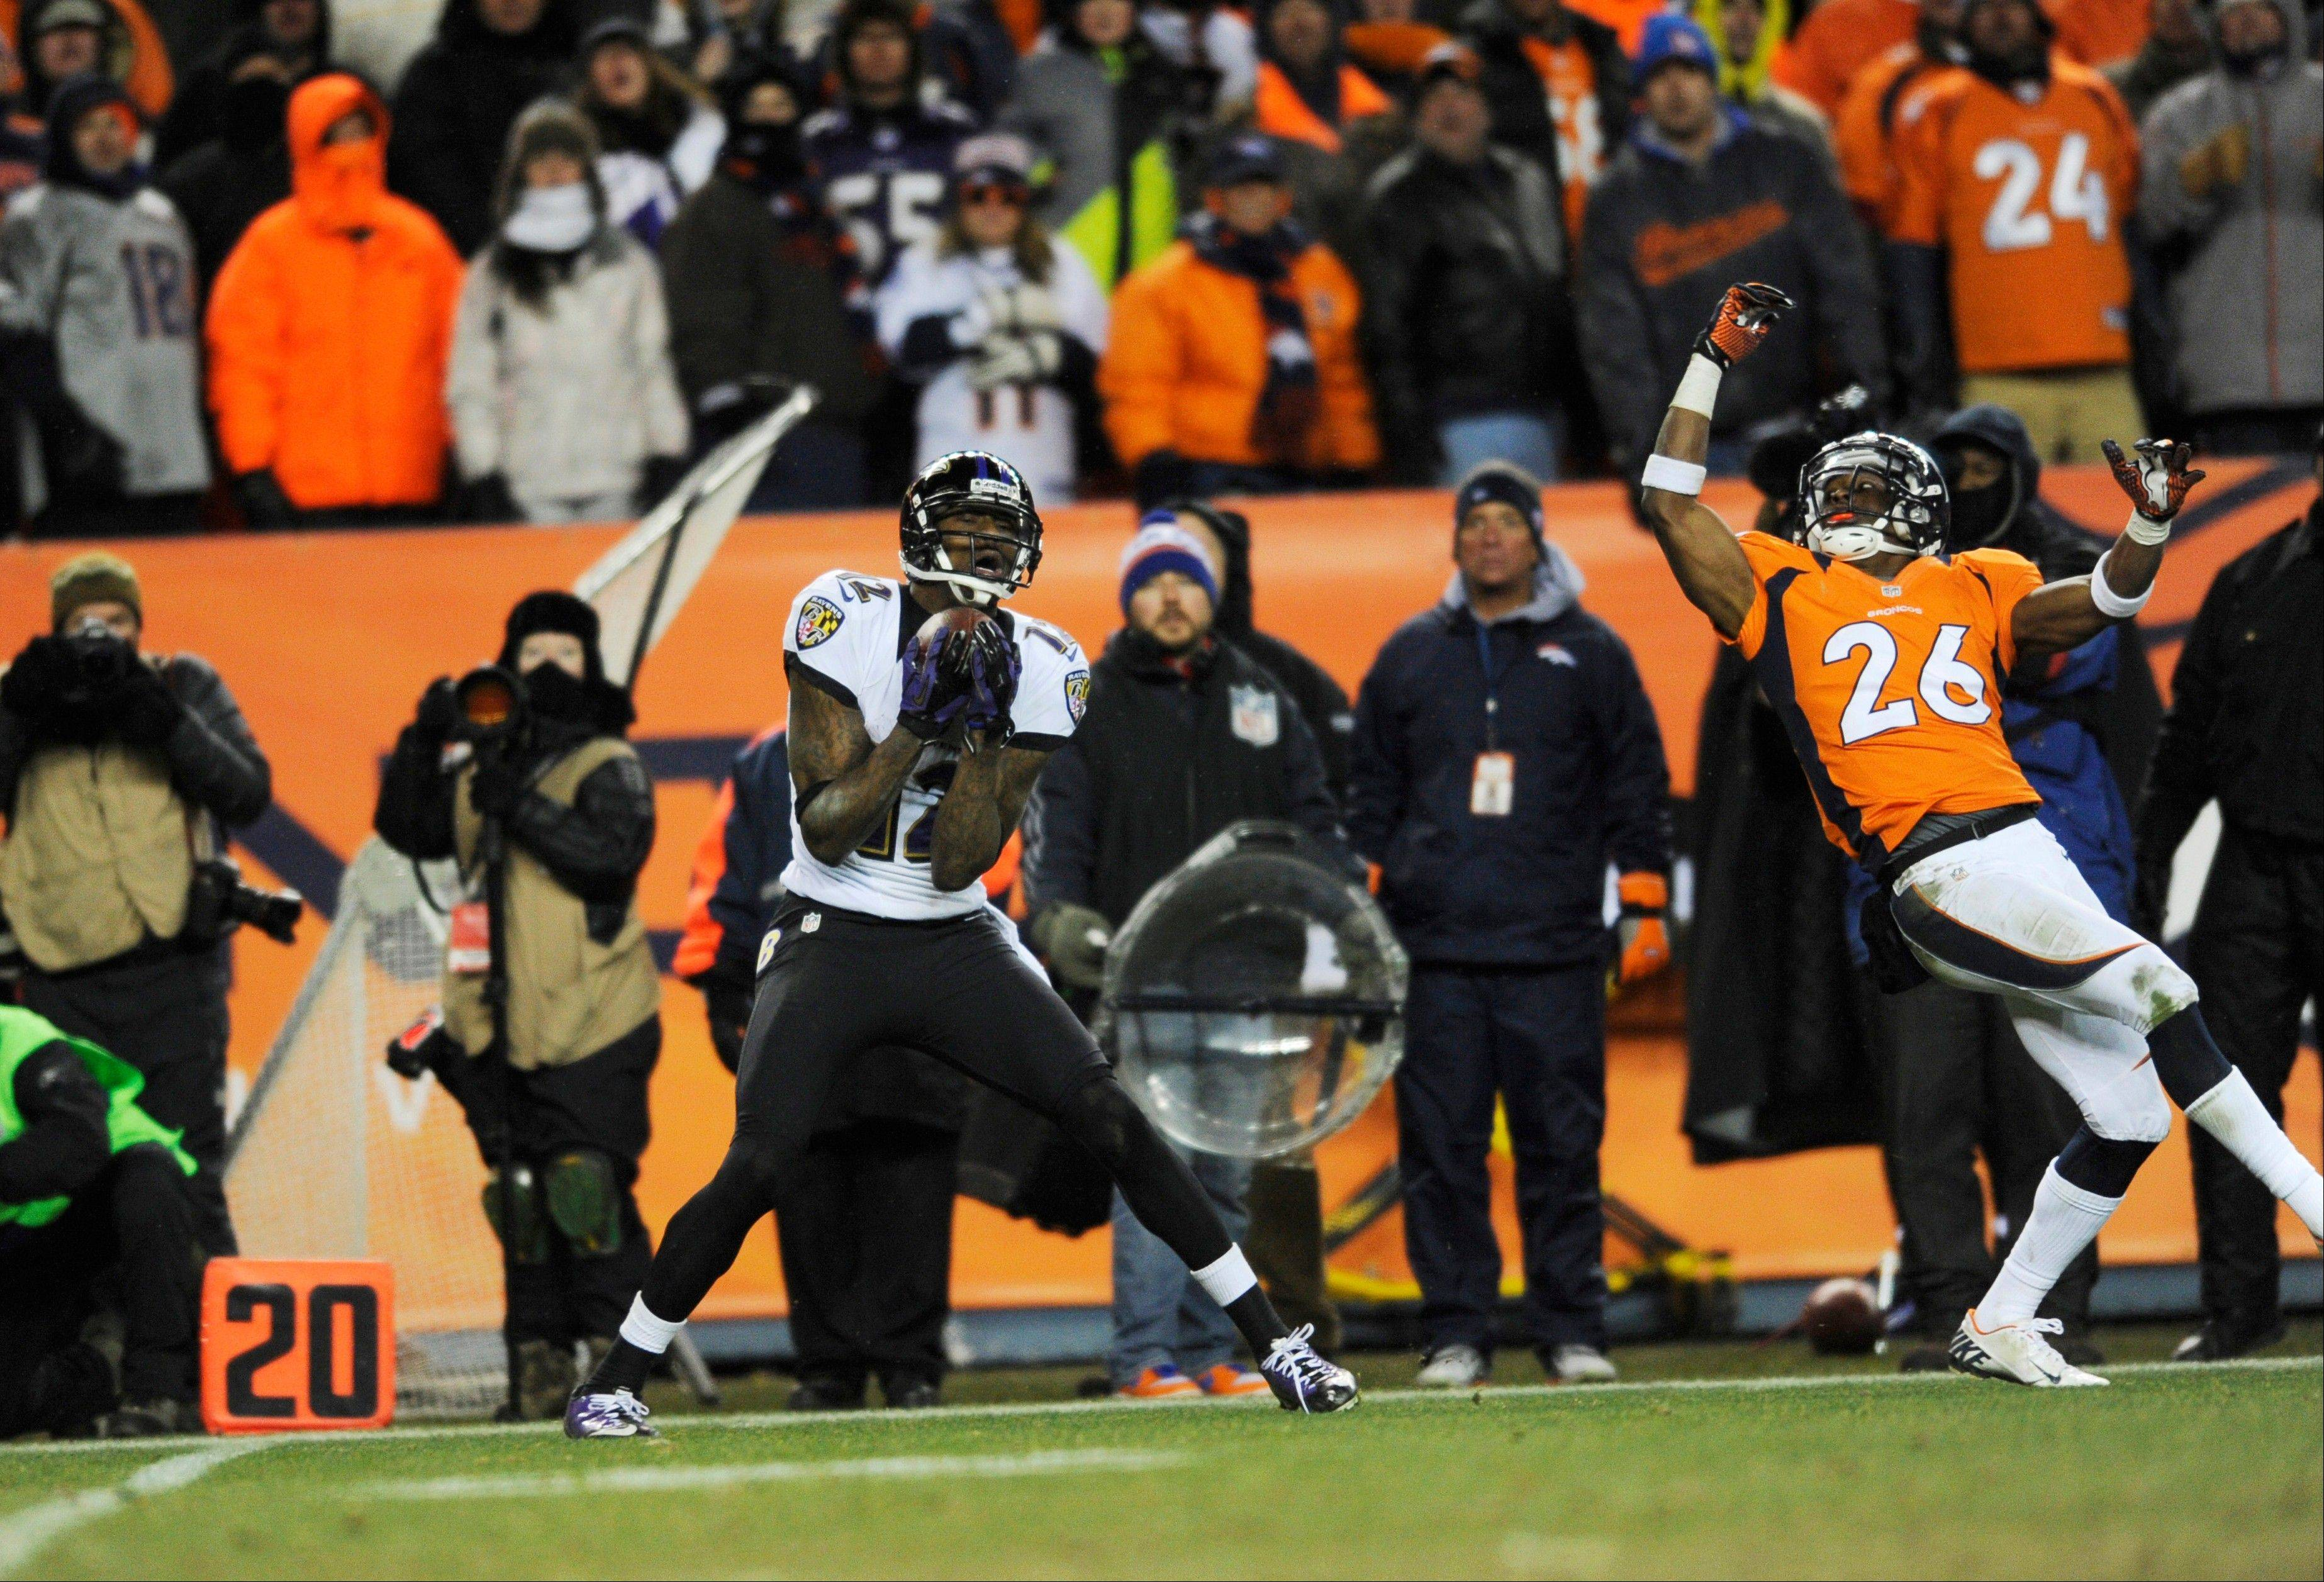 When they last met on Jan. 12, 2013, Baltimore Ravens wide receiver Jacoby Jones, caught a pass for a touchdown working against Rahim Moore in the AFC divisional playoff game.